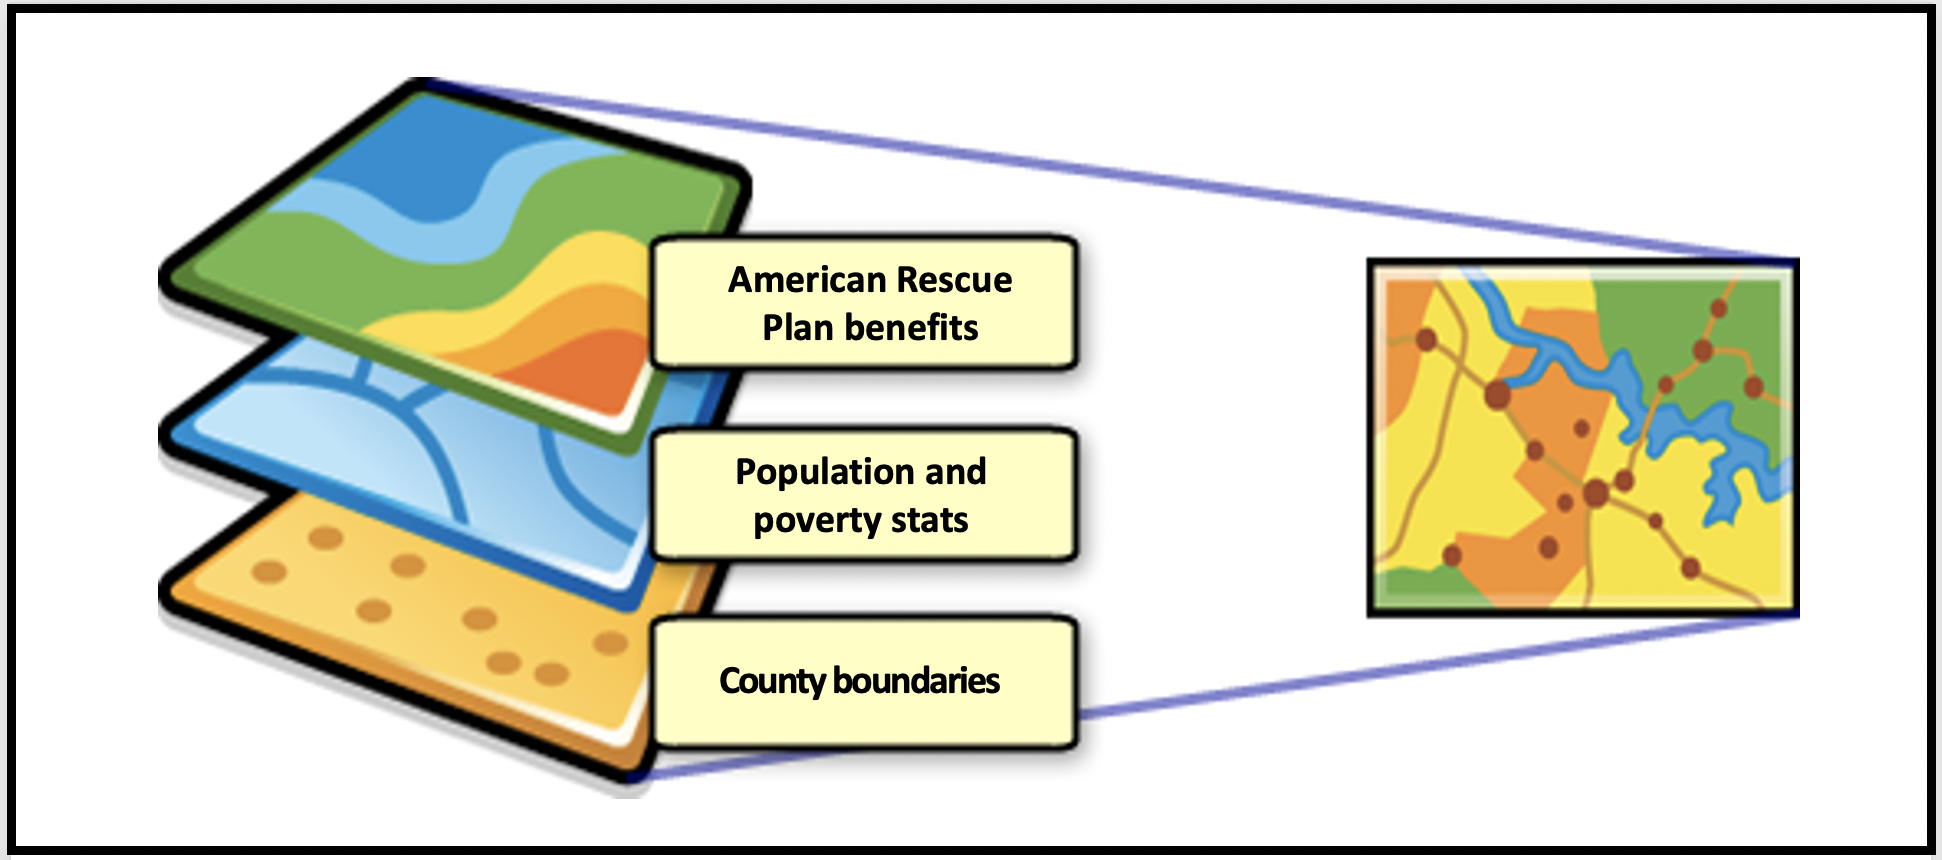 A good map represents information in different layers which makes them easier to search and understand.